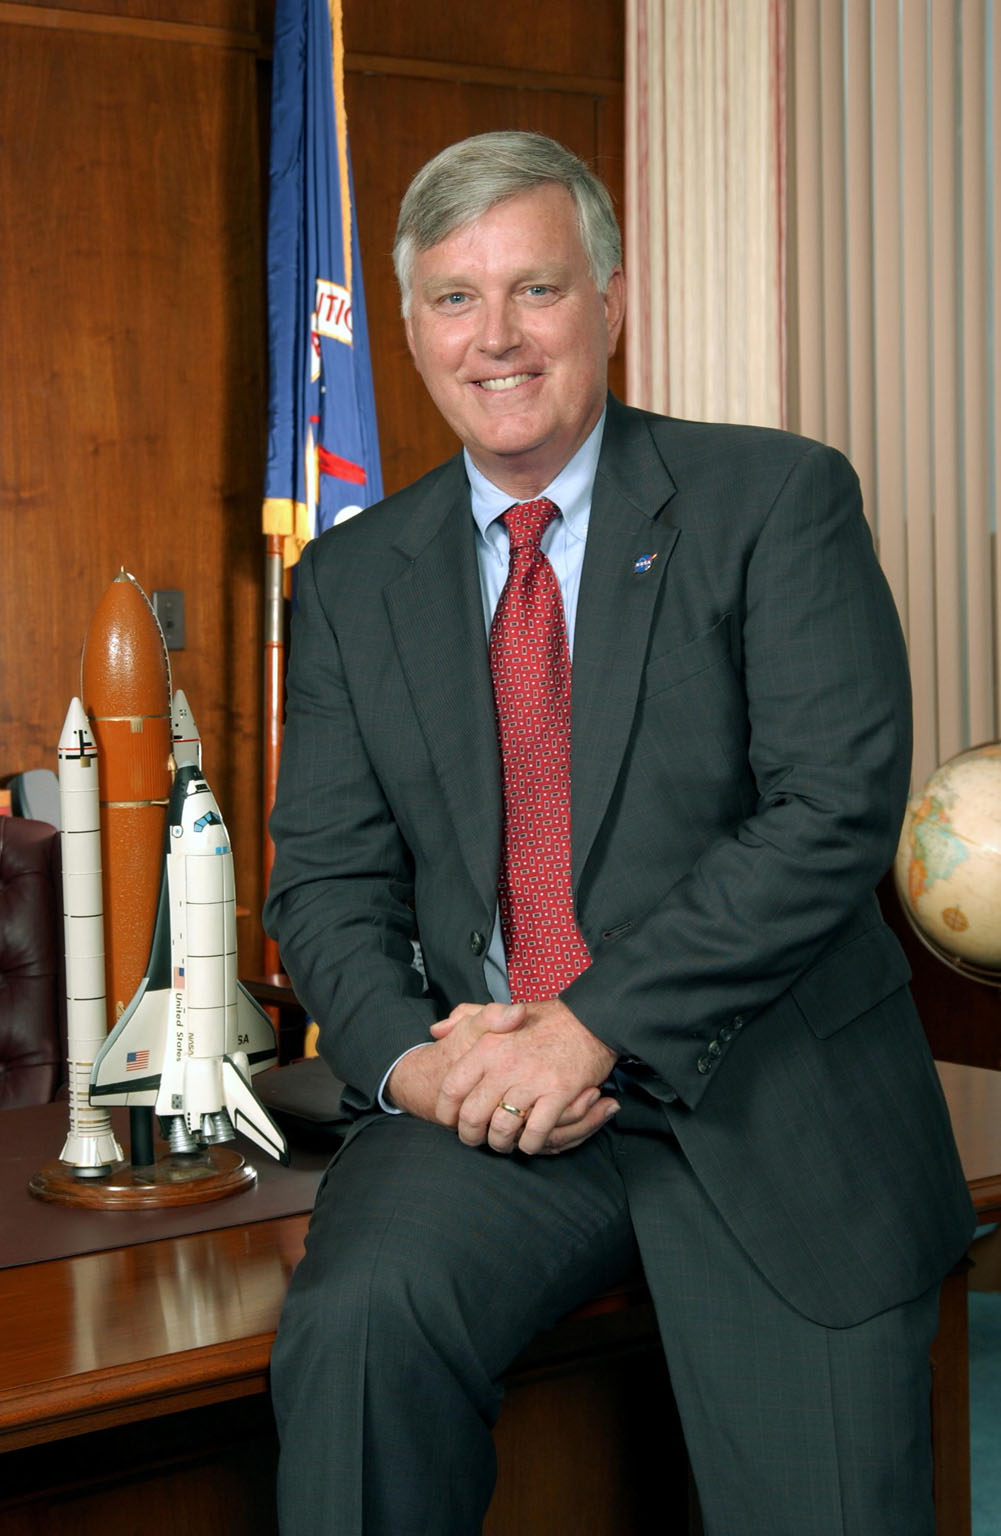 KENNEDY SPACE CENTER, FLA. - Portrait of James W. Kennedy, the director of the NASA Kennedy Space Center (KSC) in Florida from August 2003 to January 2007. Photo credit: NASA/Kim Shiflett